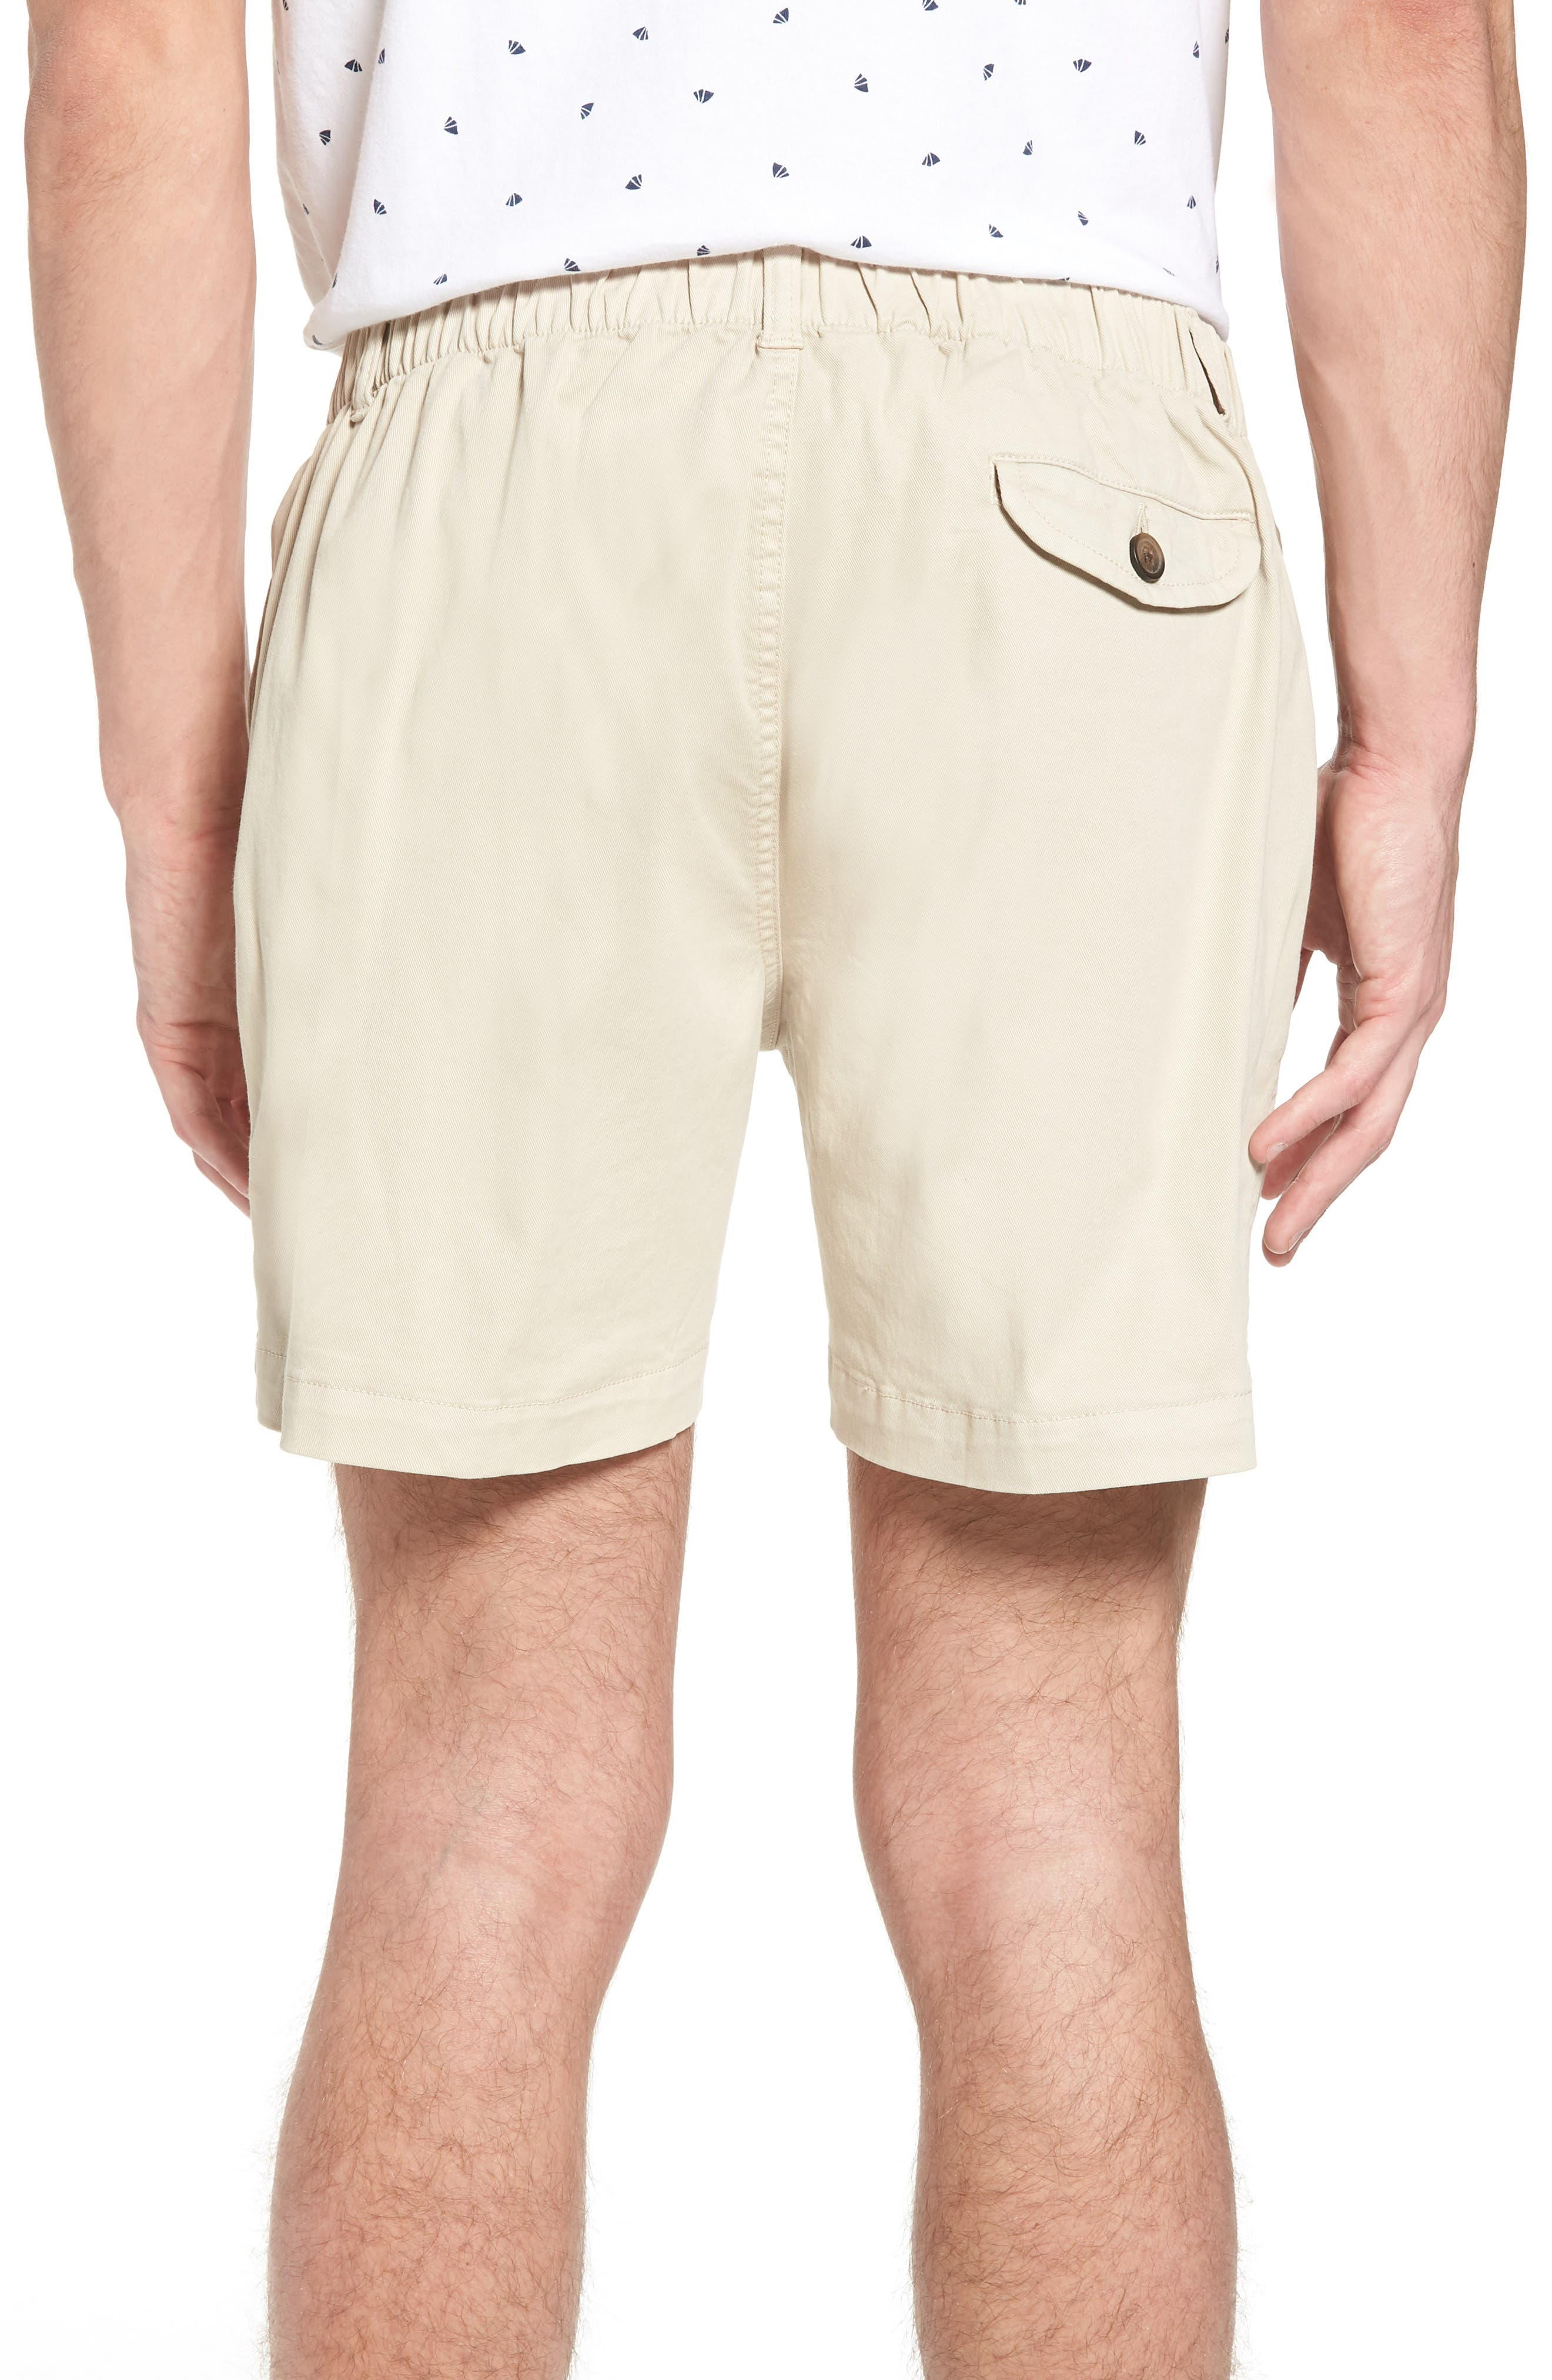 Snappers Elastic Waist 5.5 Inch Stretch Shorts,                             Alternate thumbnail 2, color,                             STONE